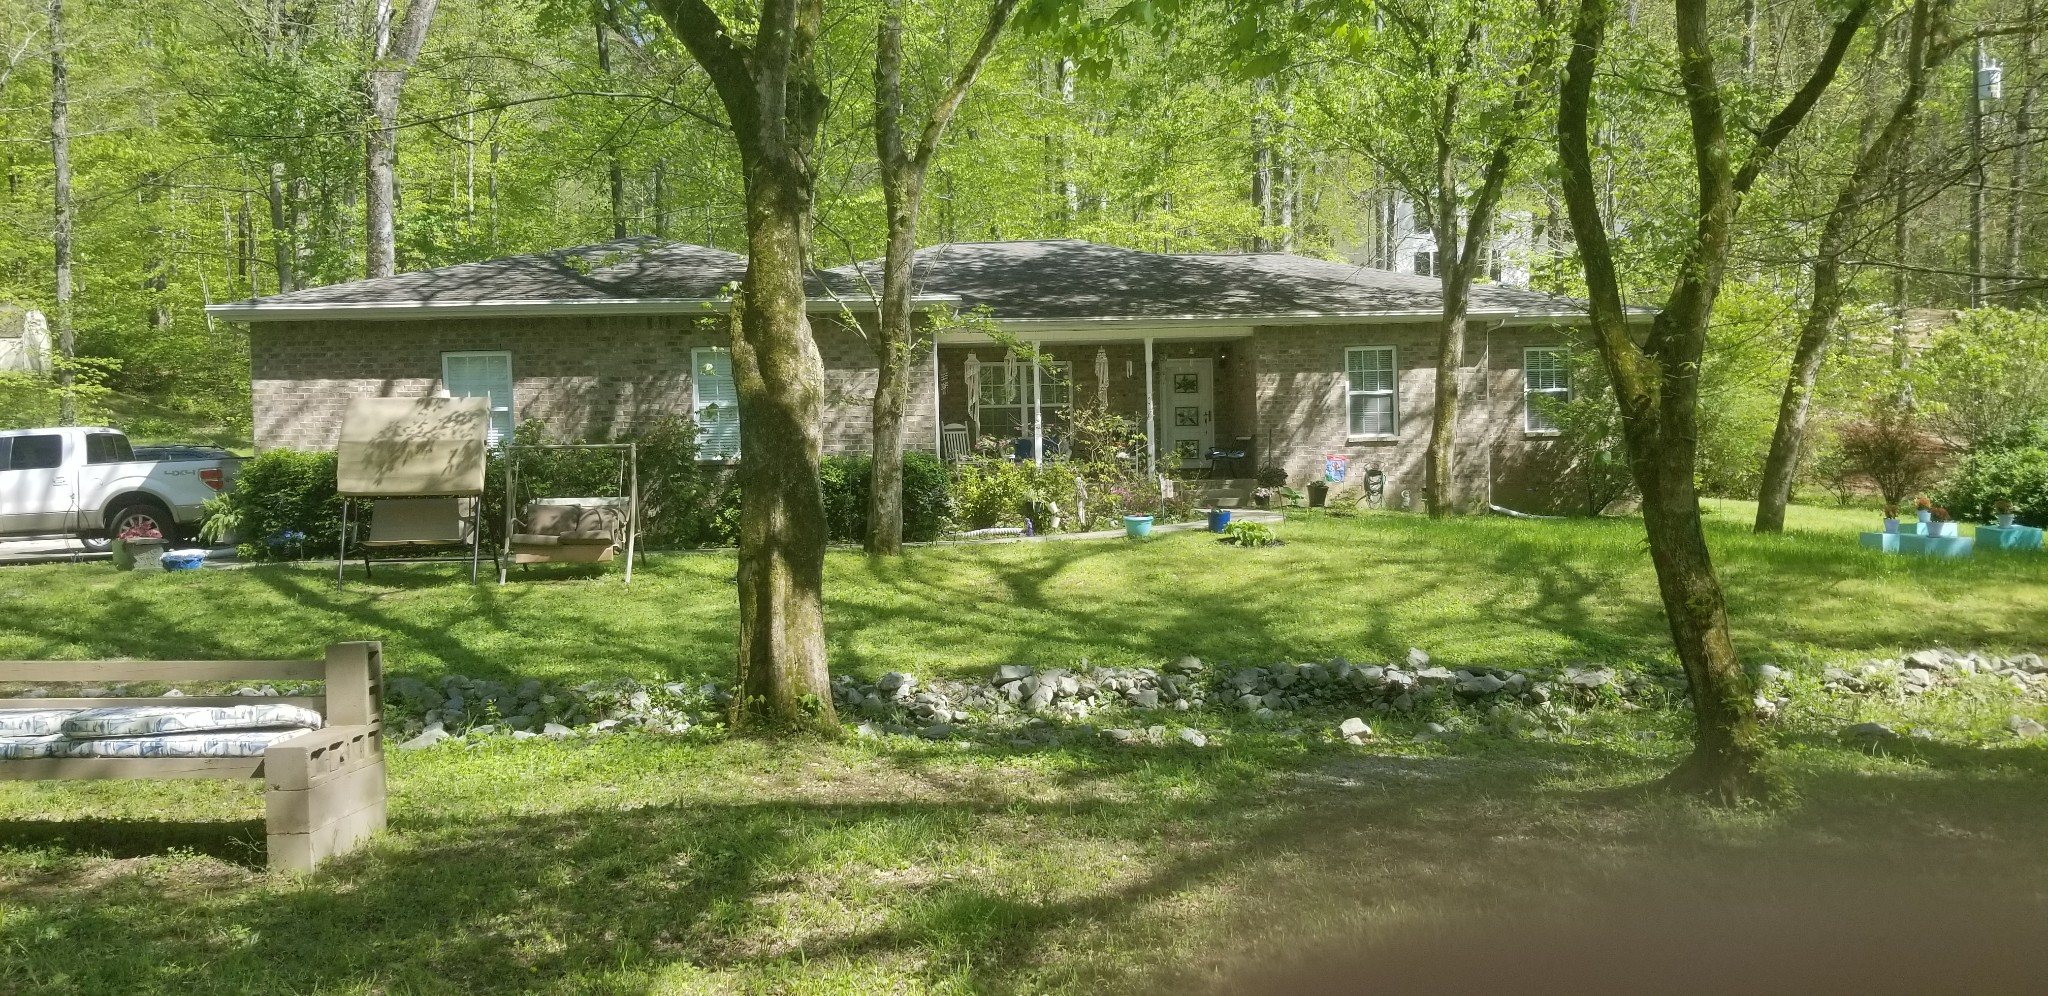 9029 Old Charlotte Pike, N, Pegram, TN 37143 - Pegram, TN real estate listing